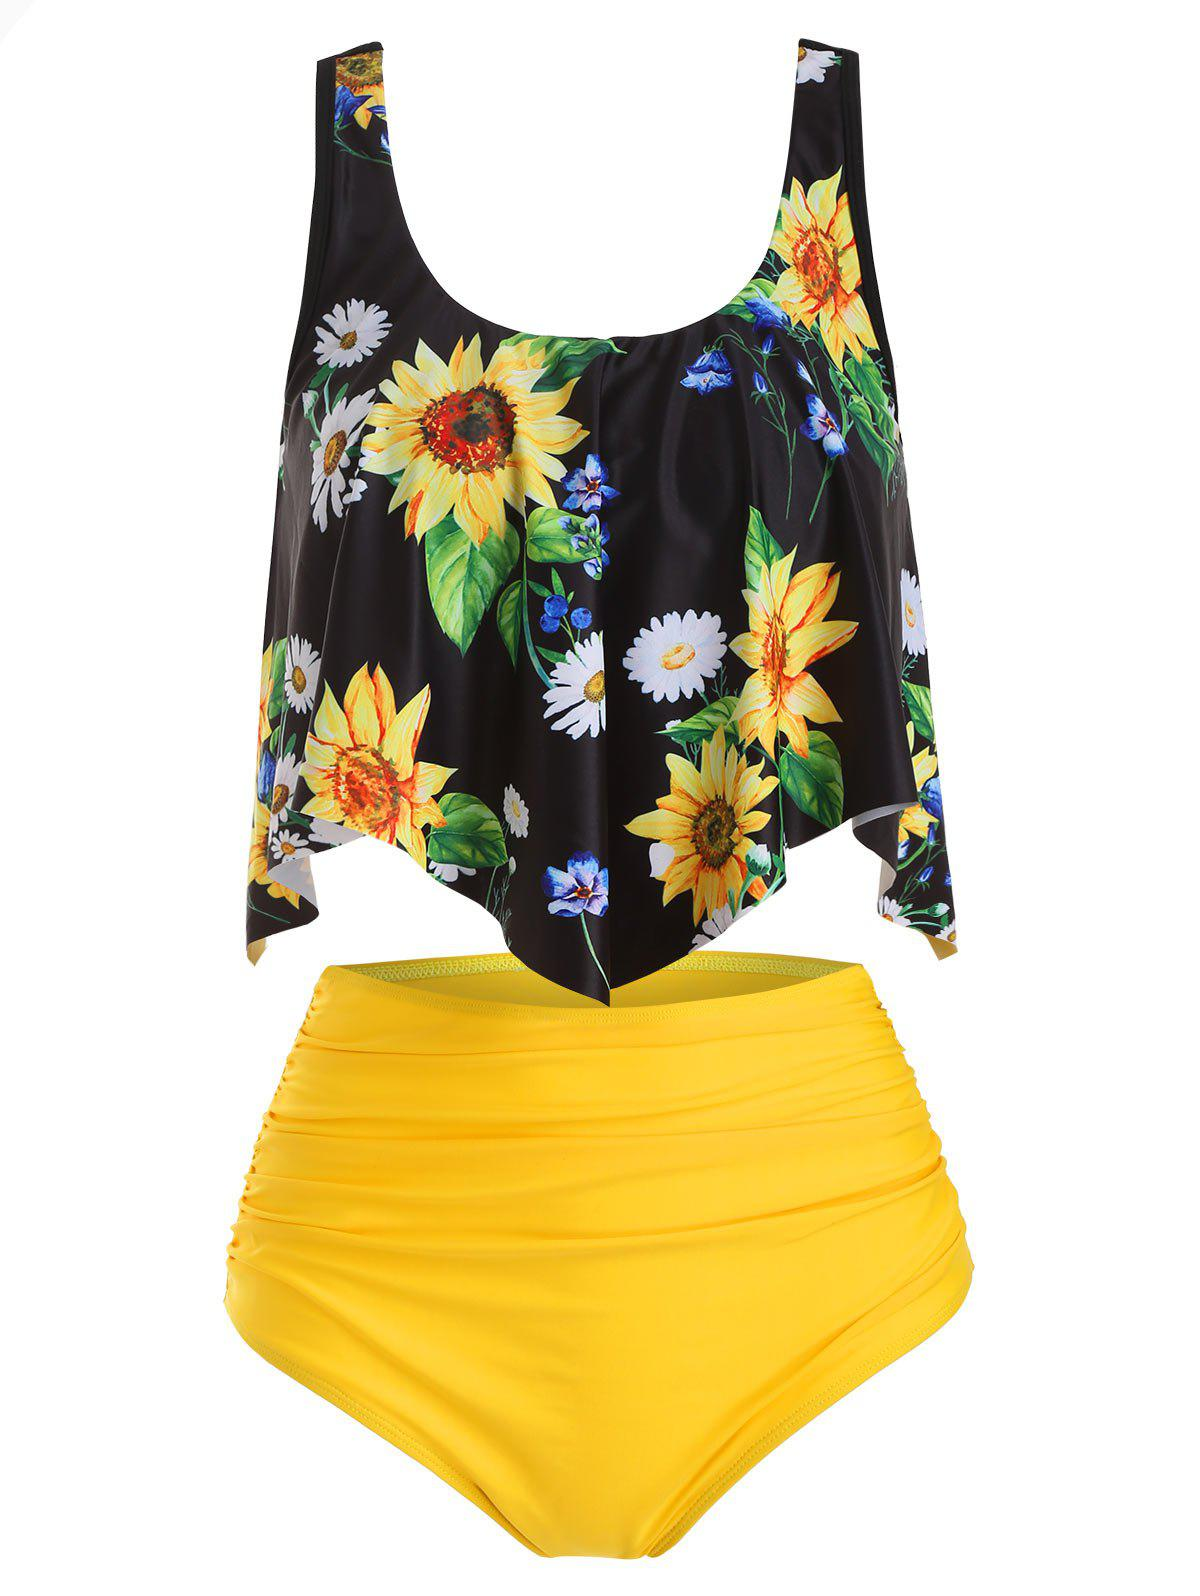 New Flounce Overlay Sunflower Tummy Control Tankini Swimwear